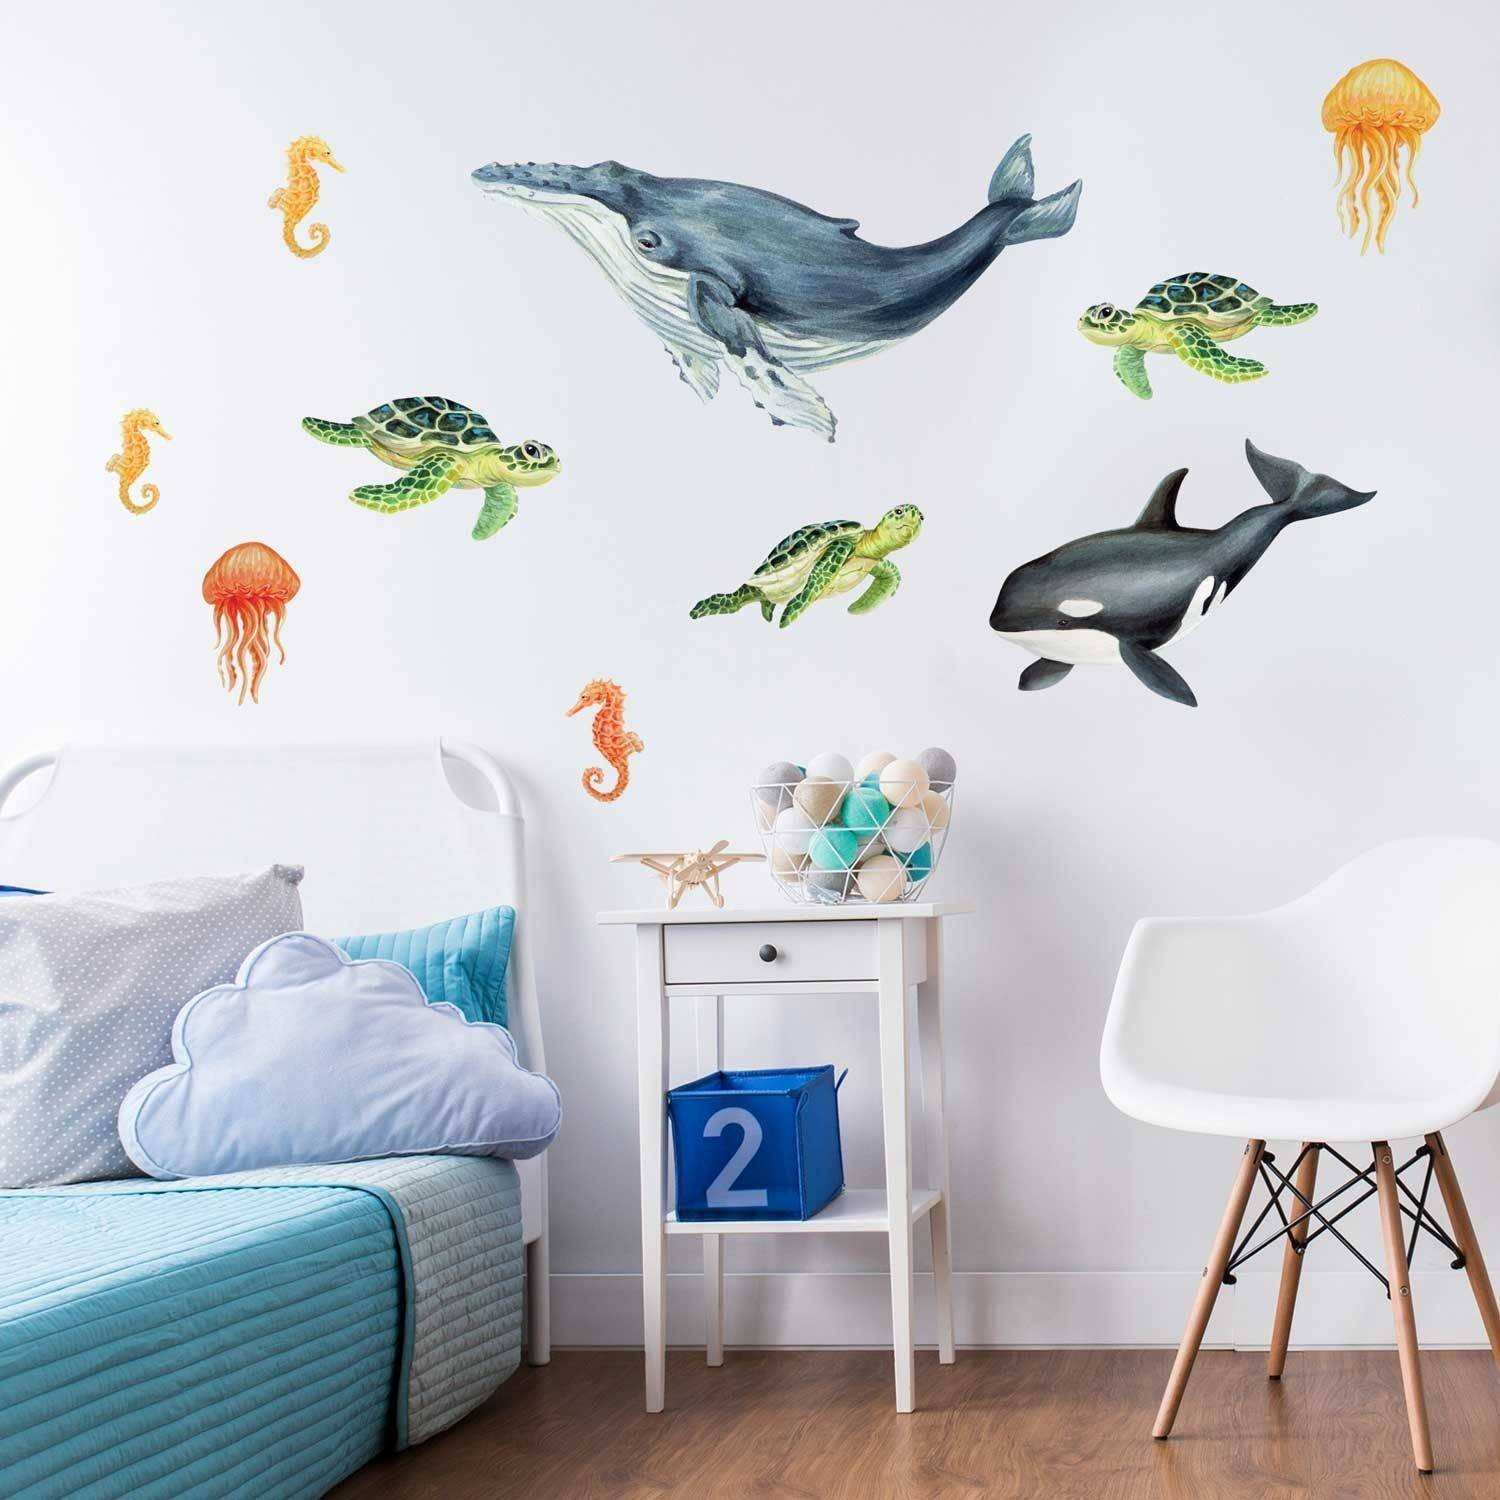 Fishing Bedroom Decor Beautiful 34 Elegant Animal Wall Decor